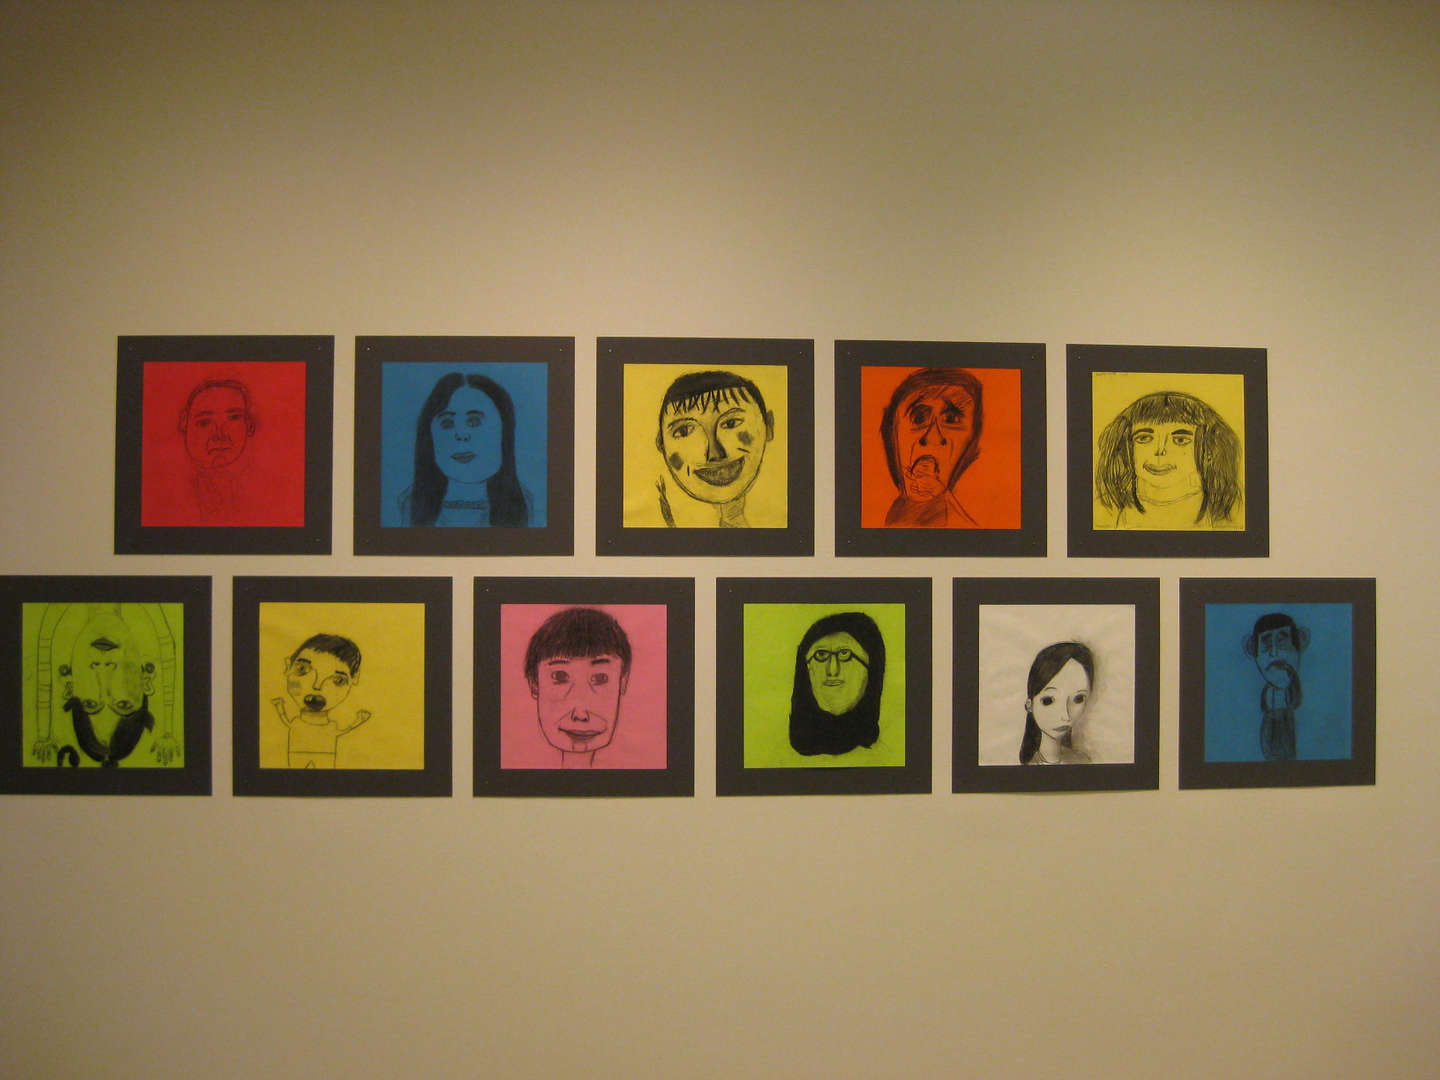 Self Portraits displayed from Guggenheim Residency Program